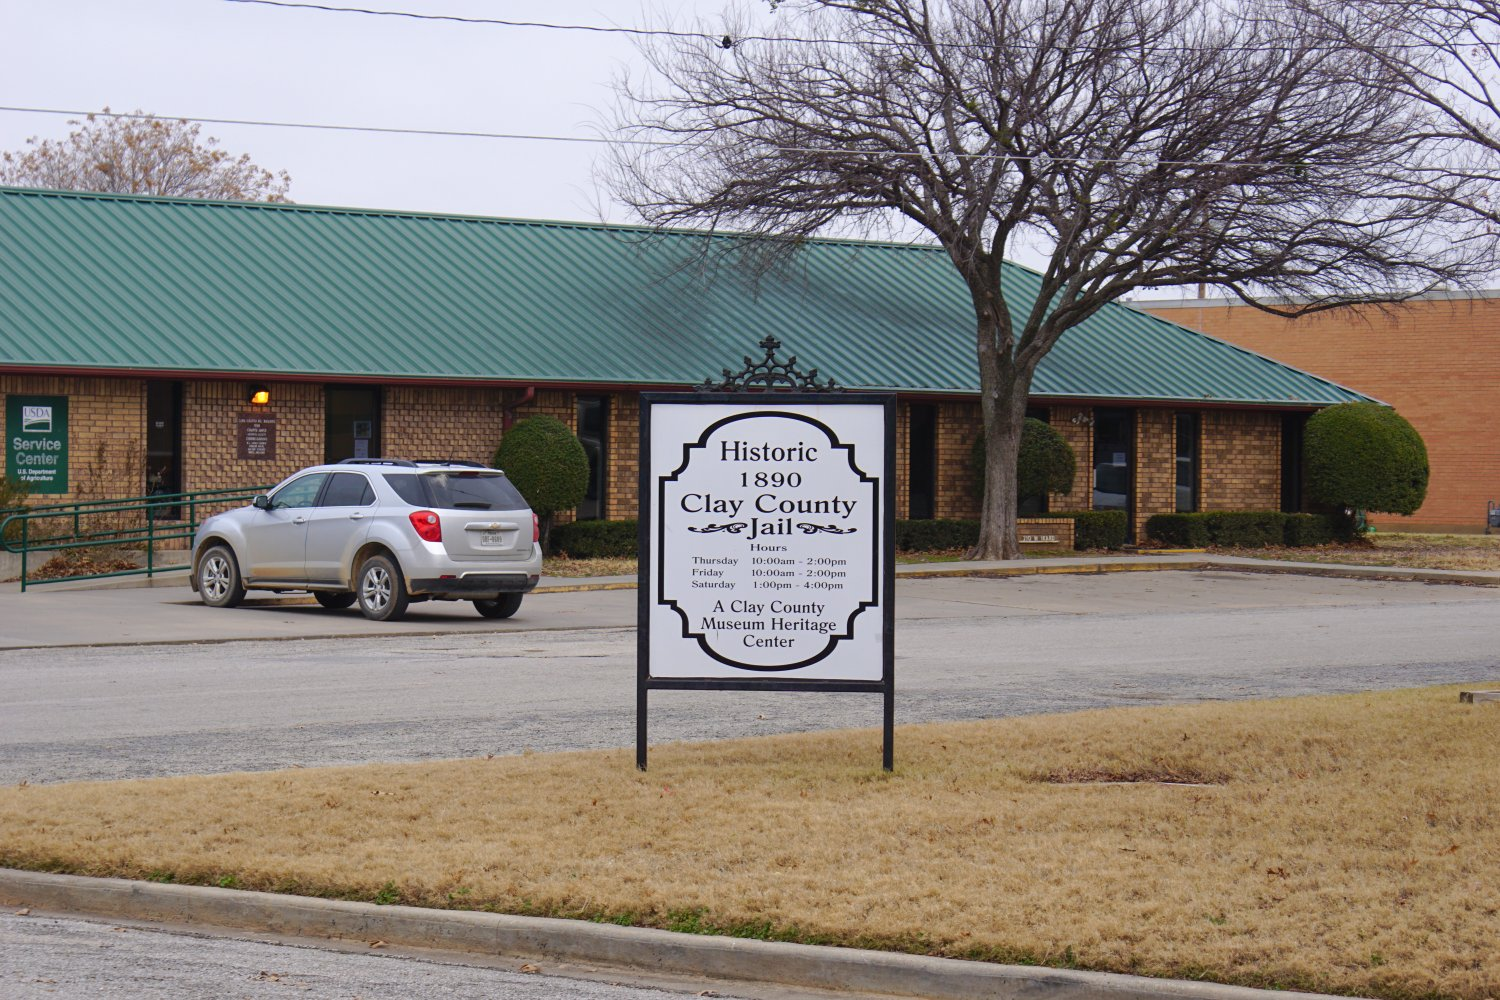 Historic Clay County Jail | Texas County Courthouses